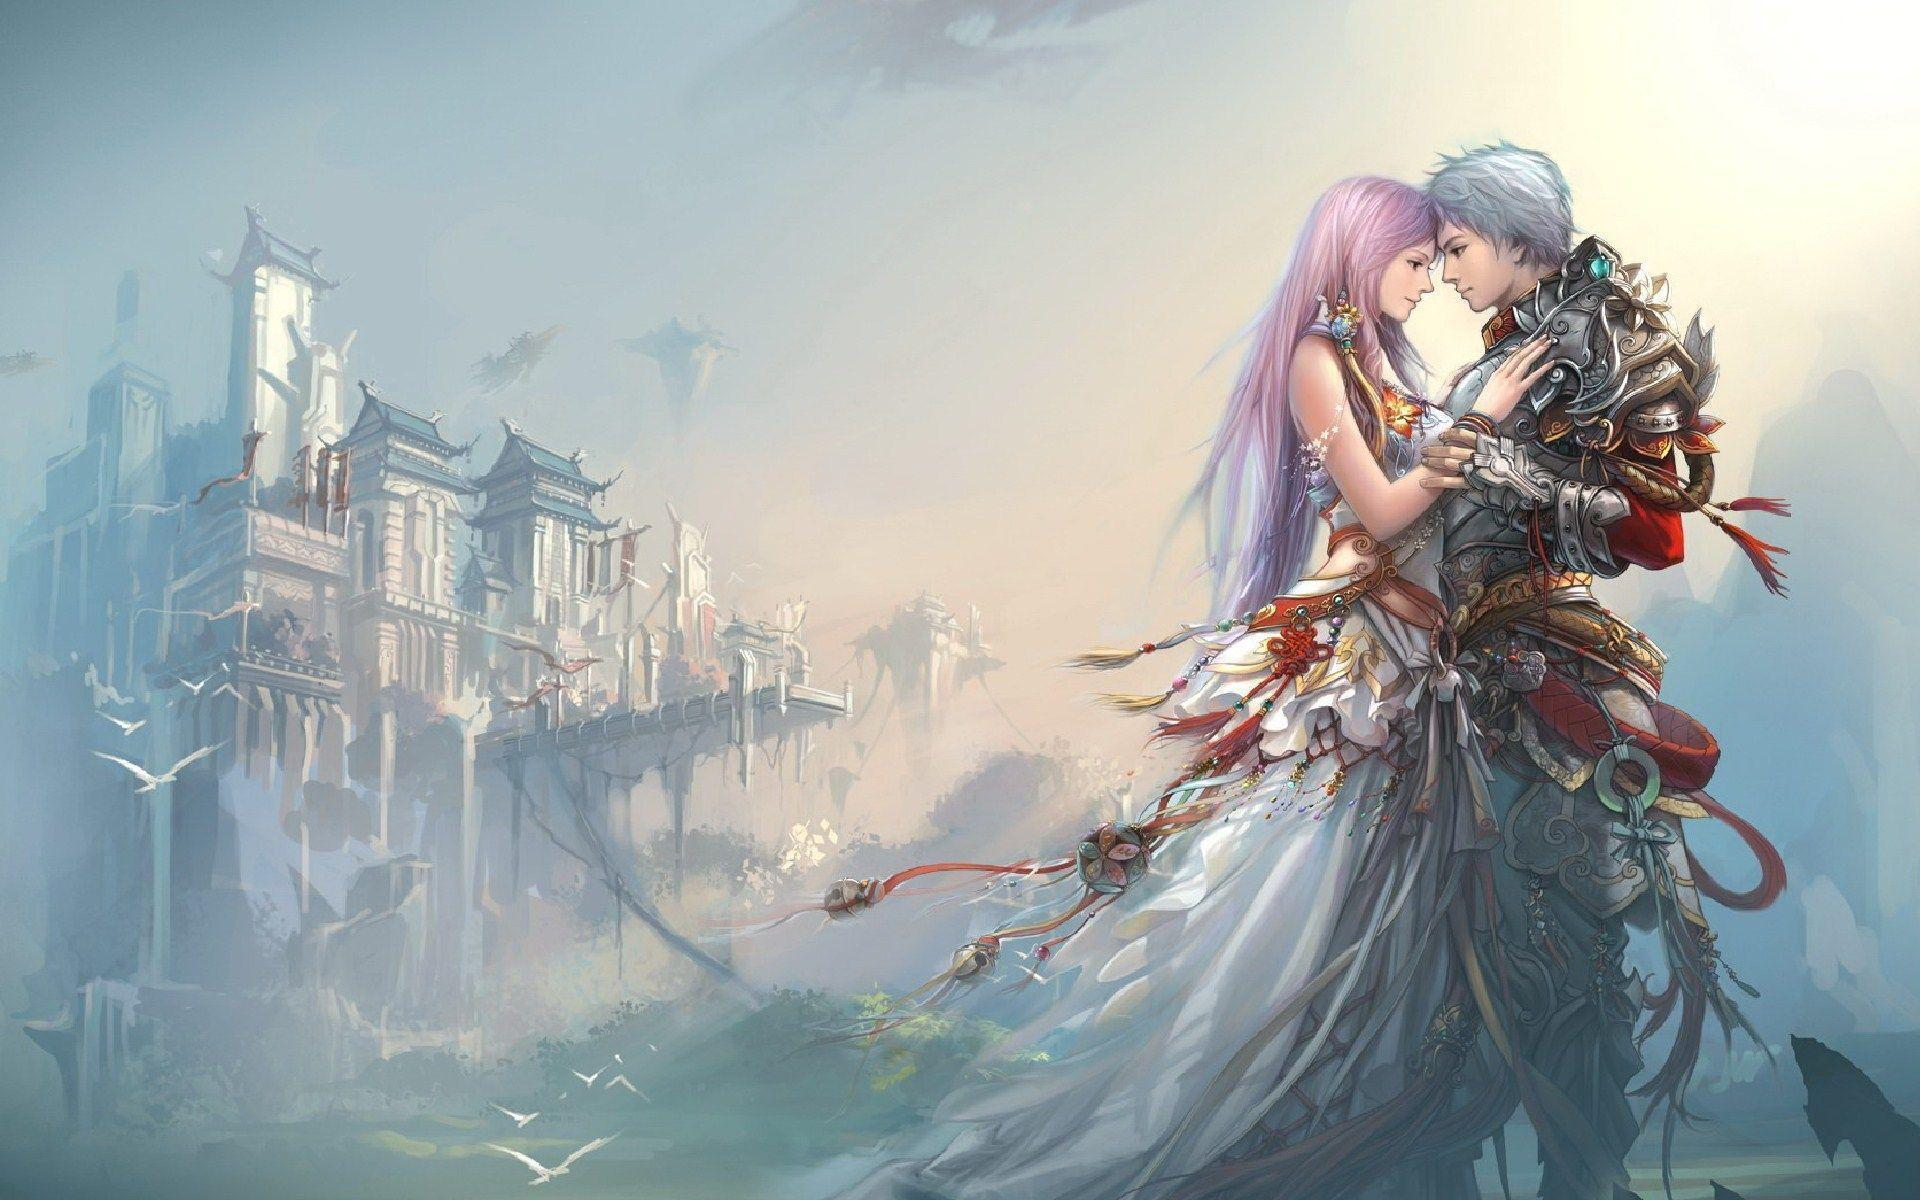 Romantic Love Girl Wallpaper : Anime Love Wallpapers - Wallpaper cave